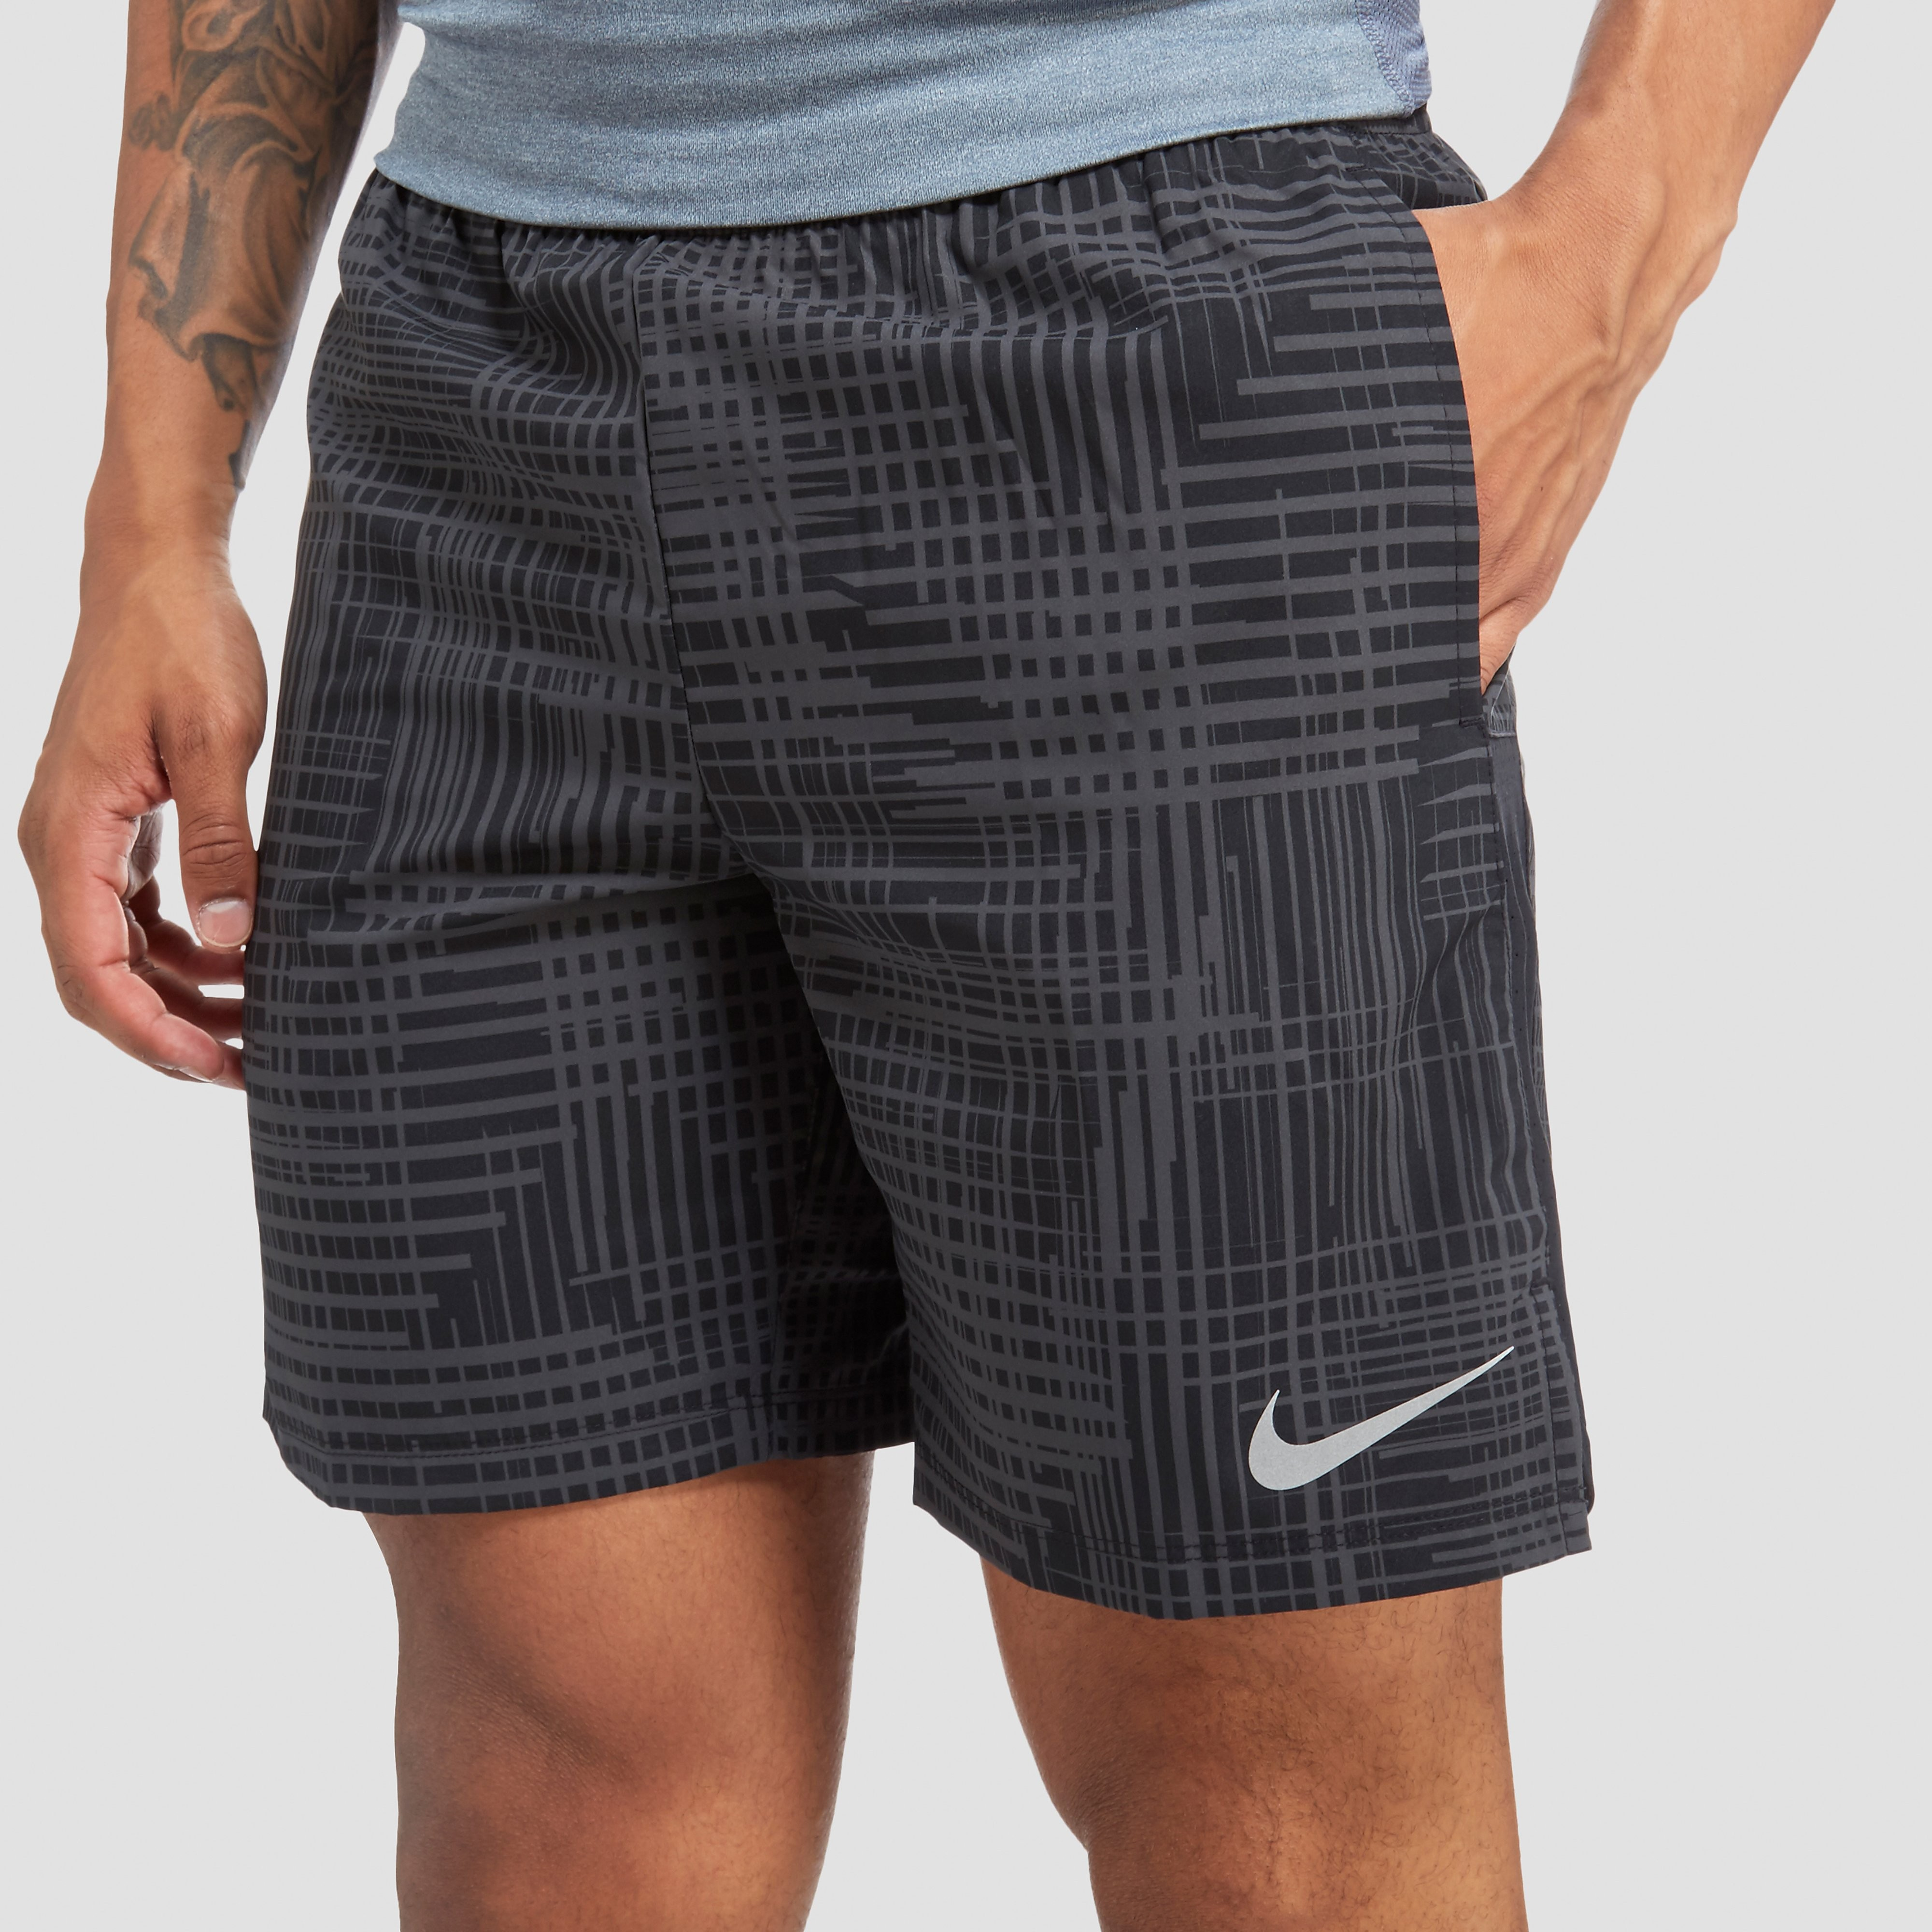 Nike Challenger 7 Performance Shorts